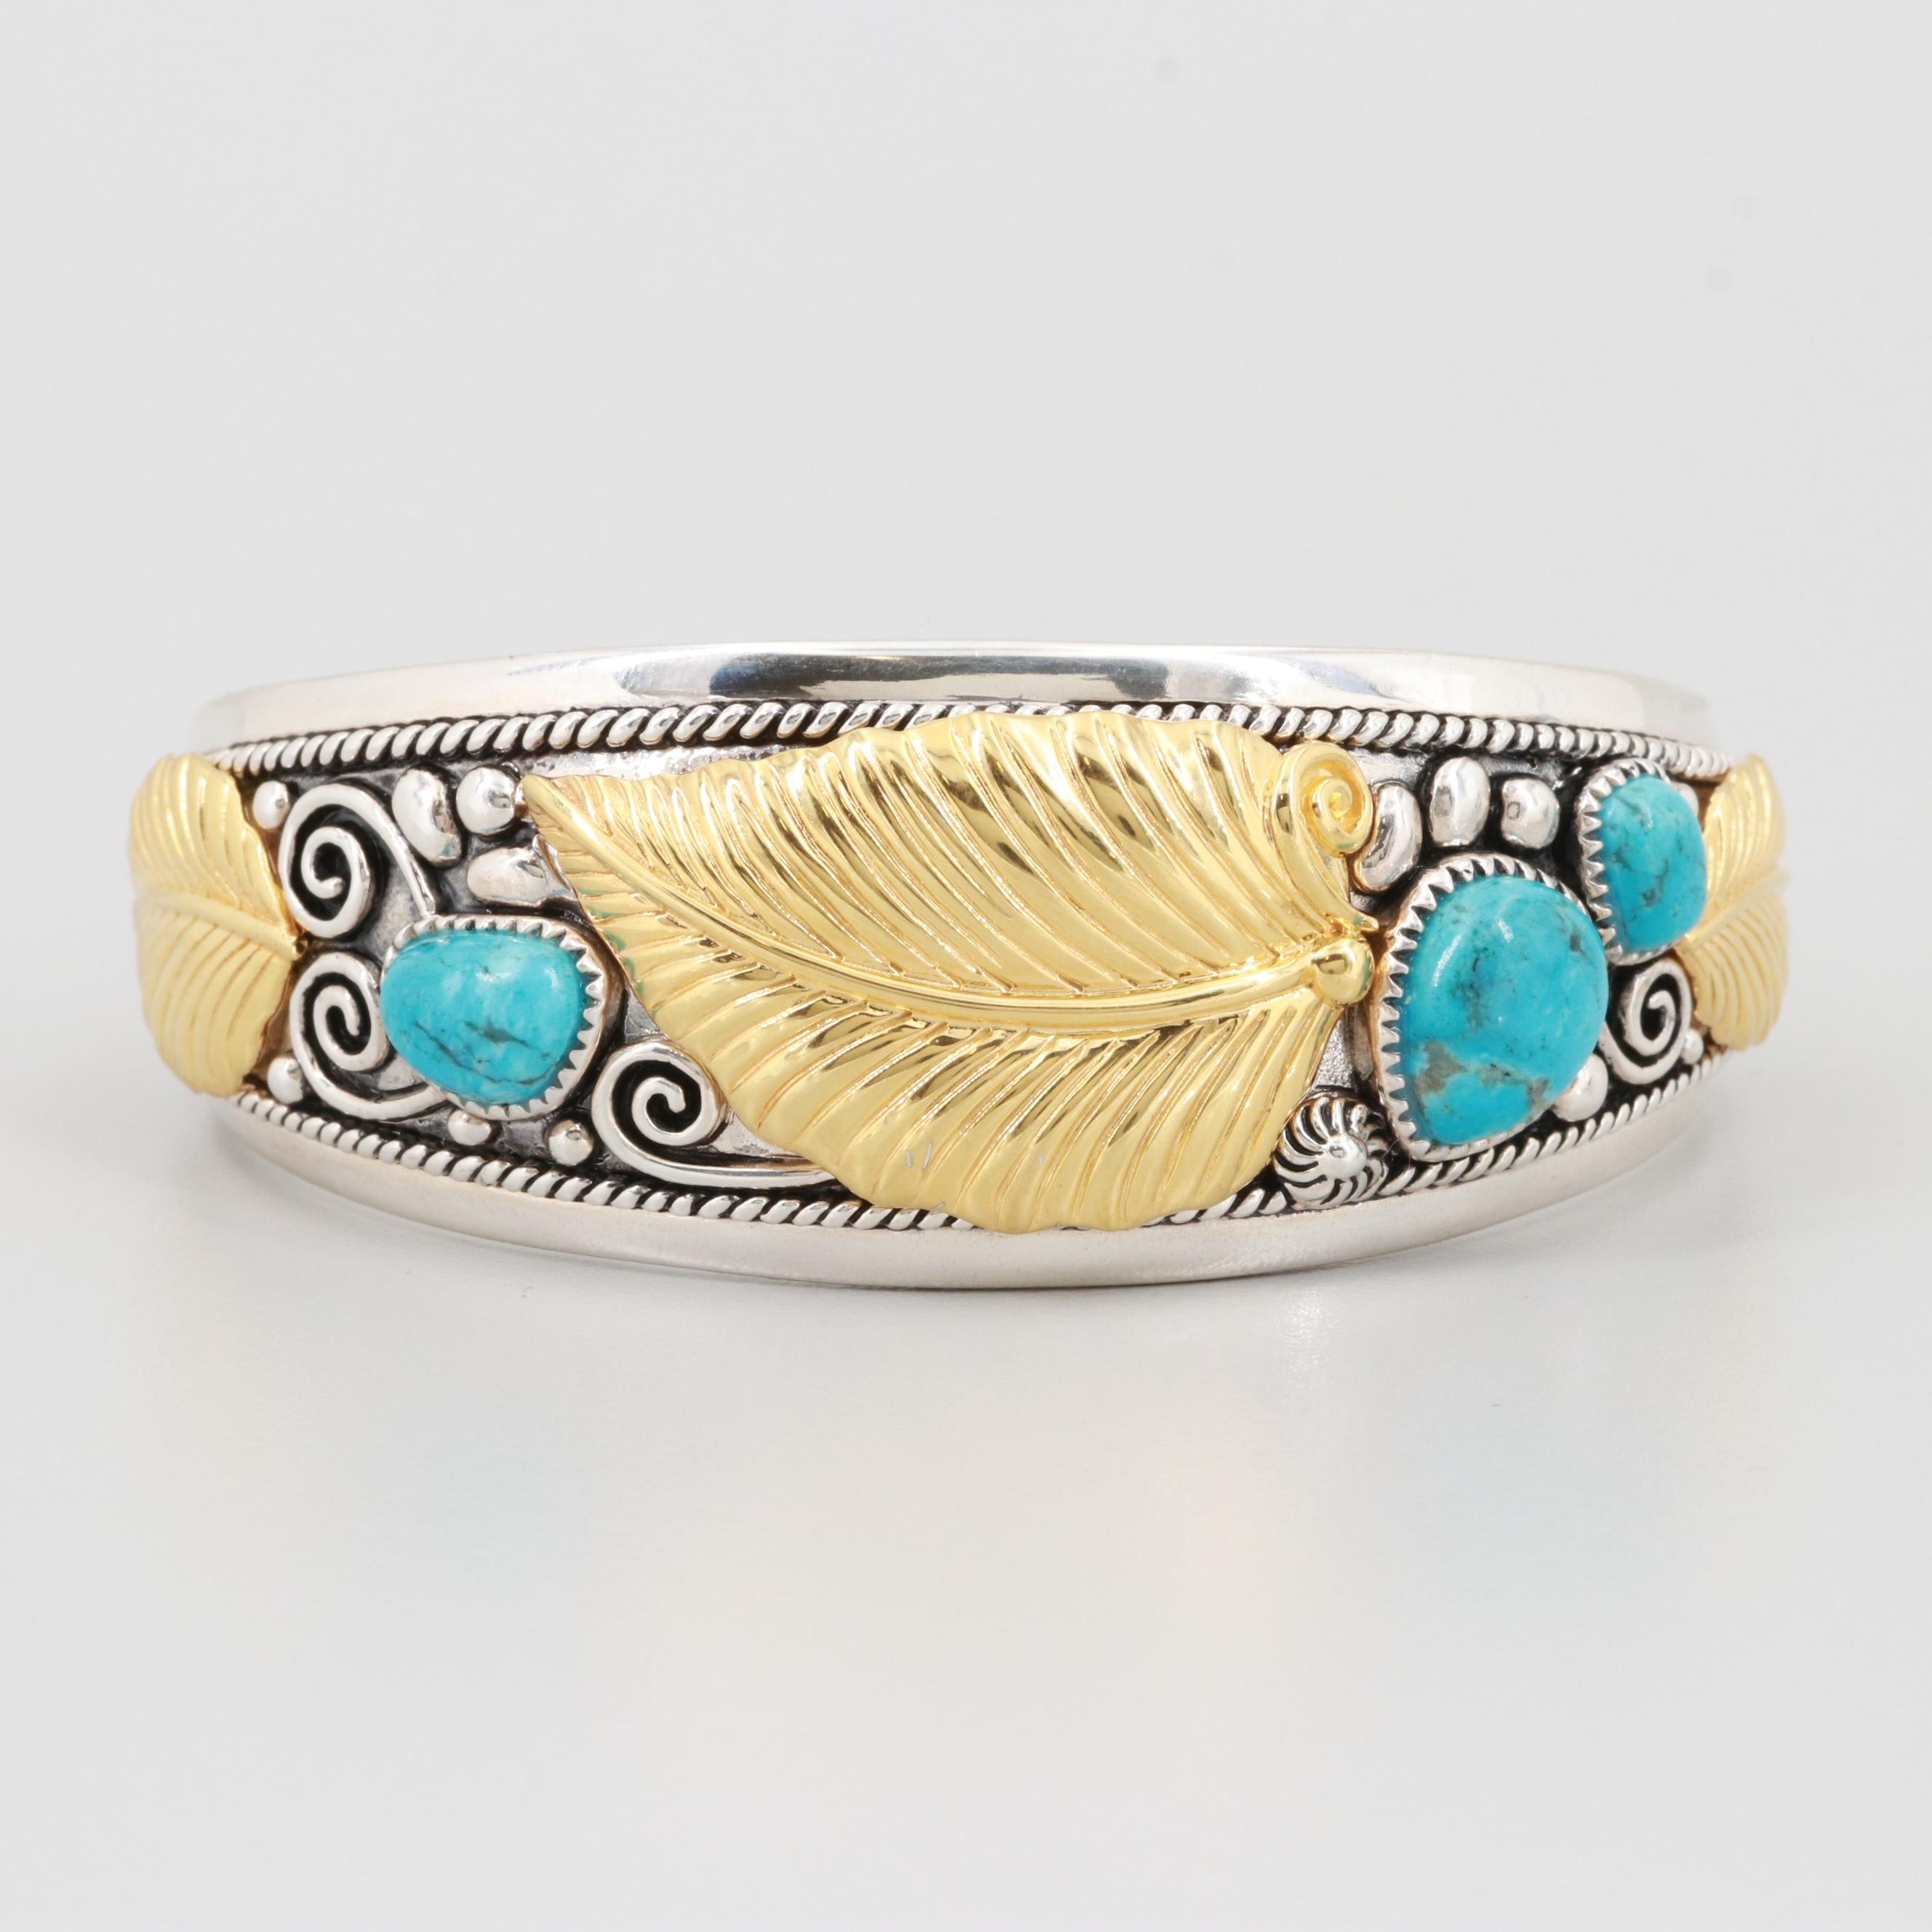 Sterling Silver Turquoise Cuff Bracelet with Gold Tone Accents